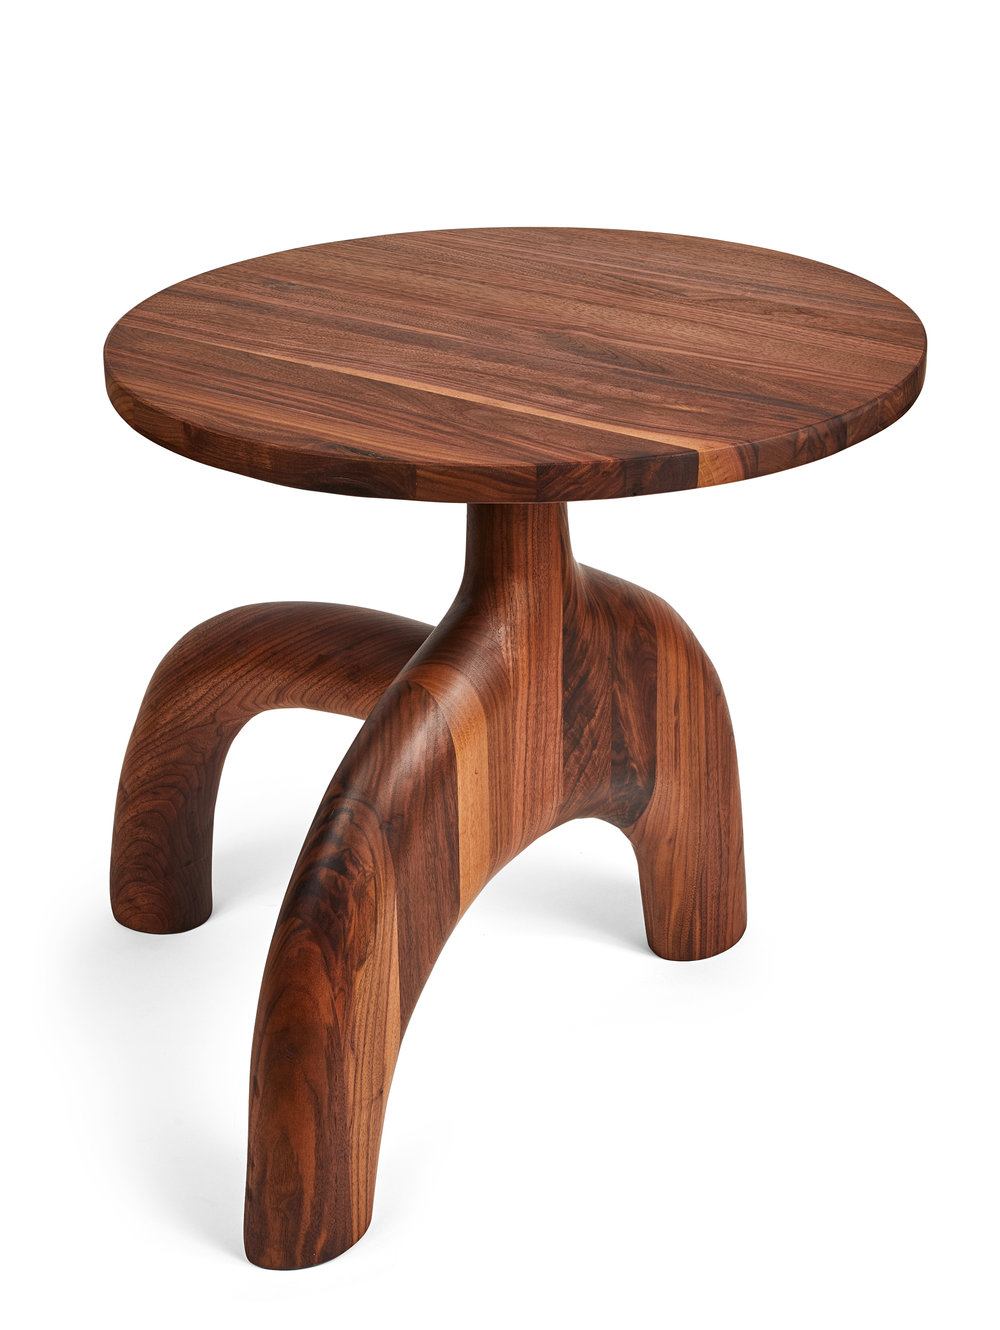 SCULPTURE 001 WALNUT SIDE TABLE (1).jpg